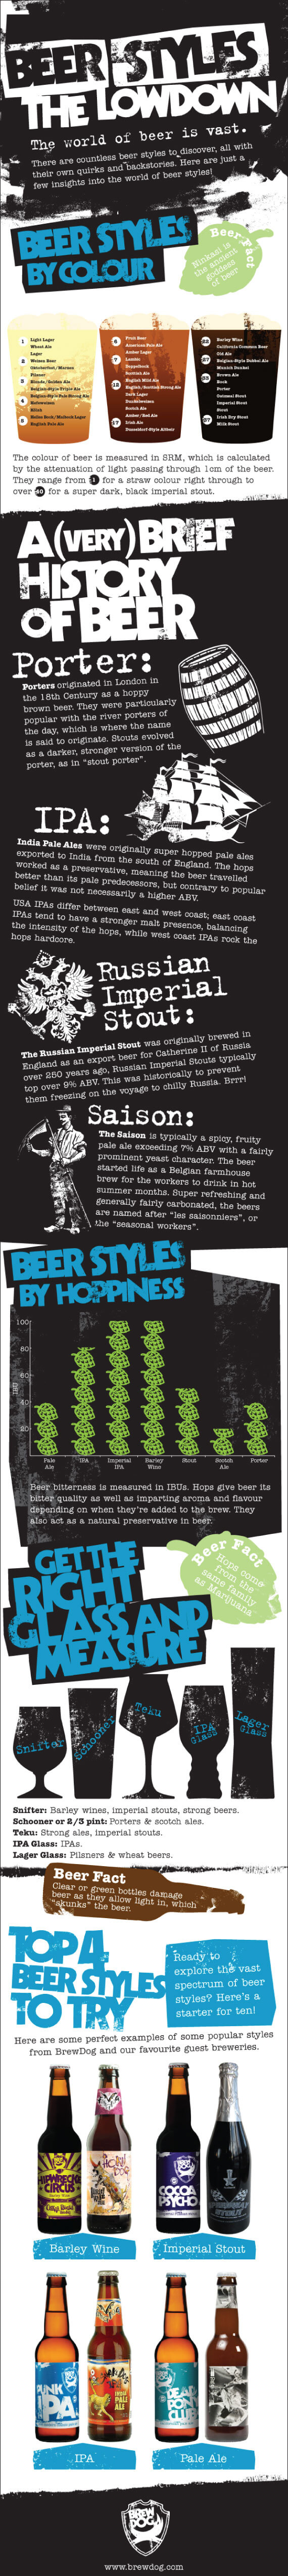 Image titled 'Beer Styles, The Lowdown'